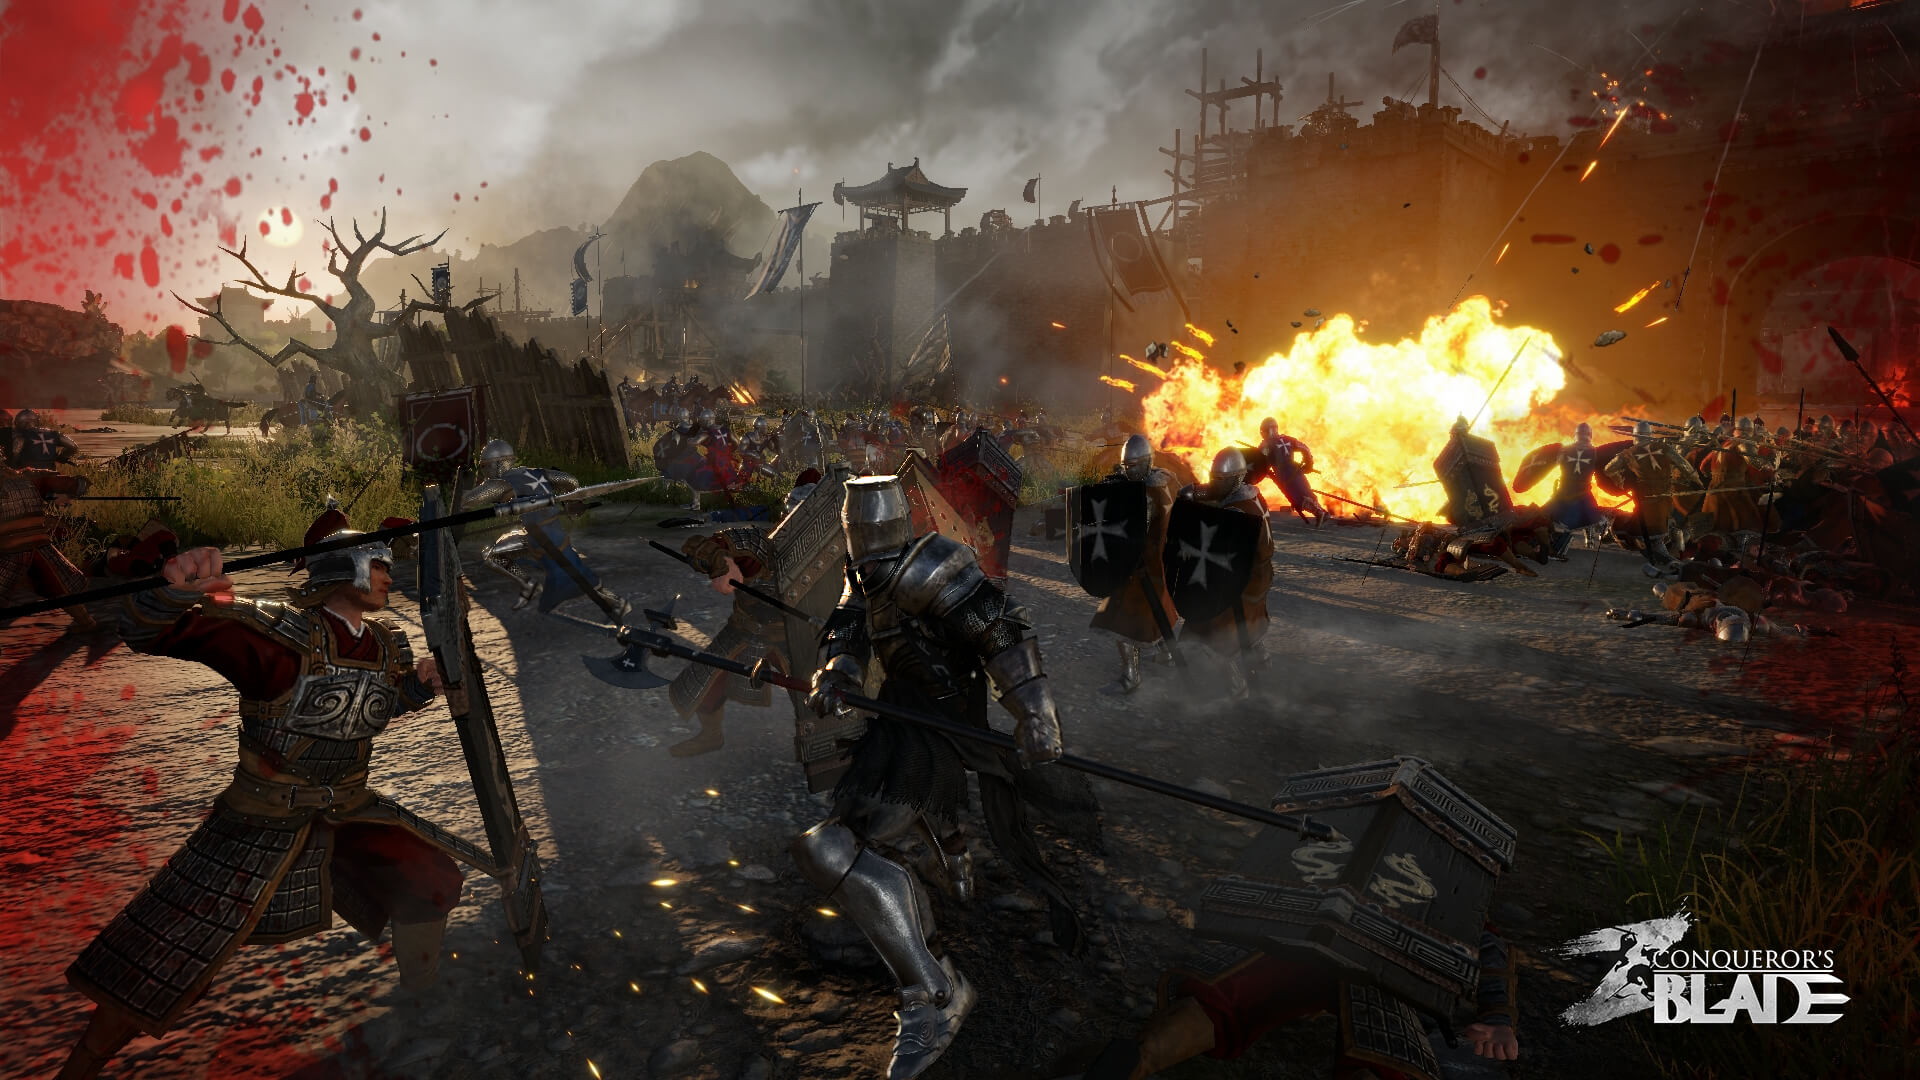 Conqueror's Blade Screenshot 3